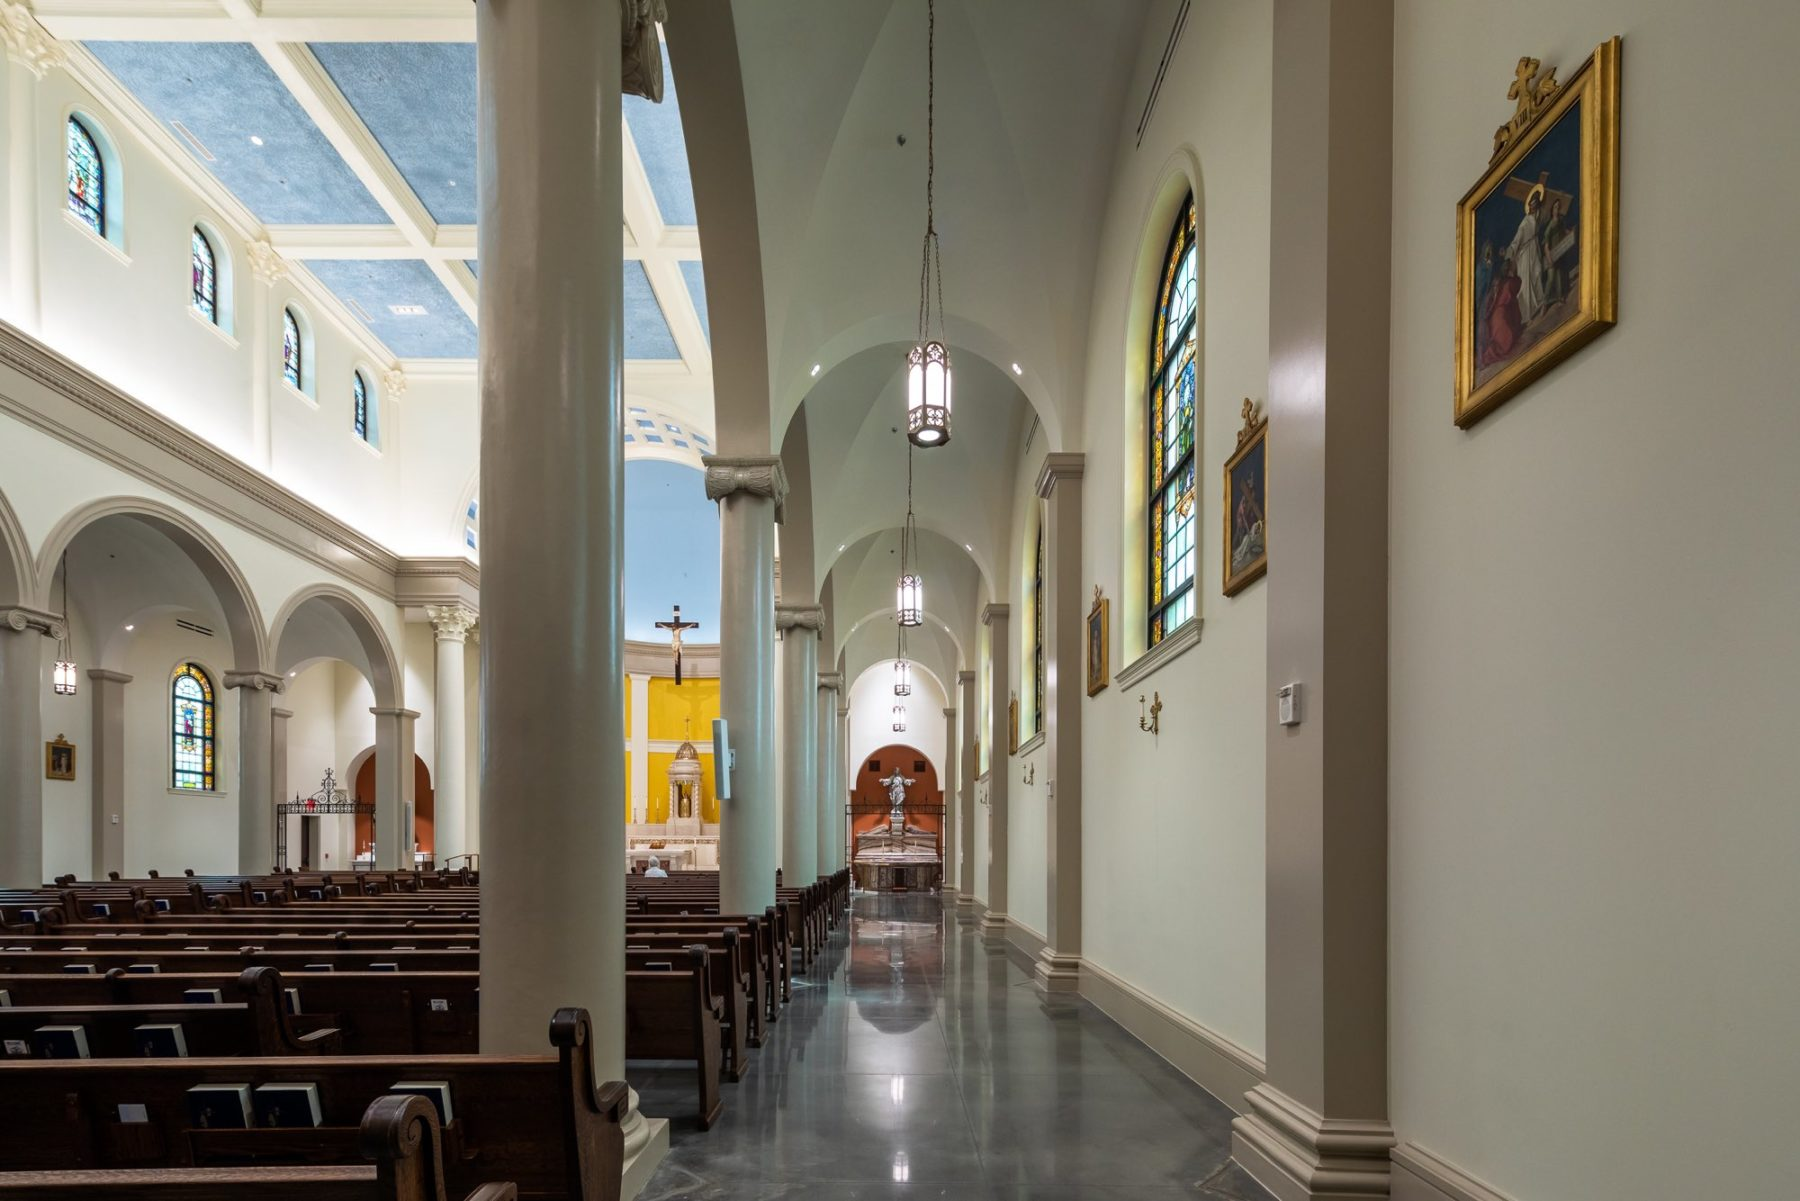 Ambulatory side aisle nave with Sacred heart of Jesus shrine visual termination polished concrete floor by Harrison Design